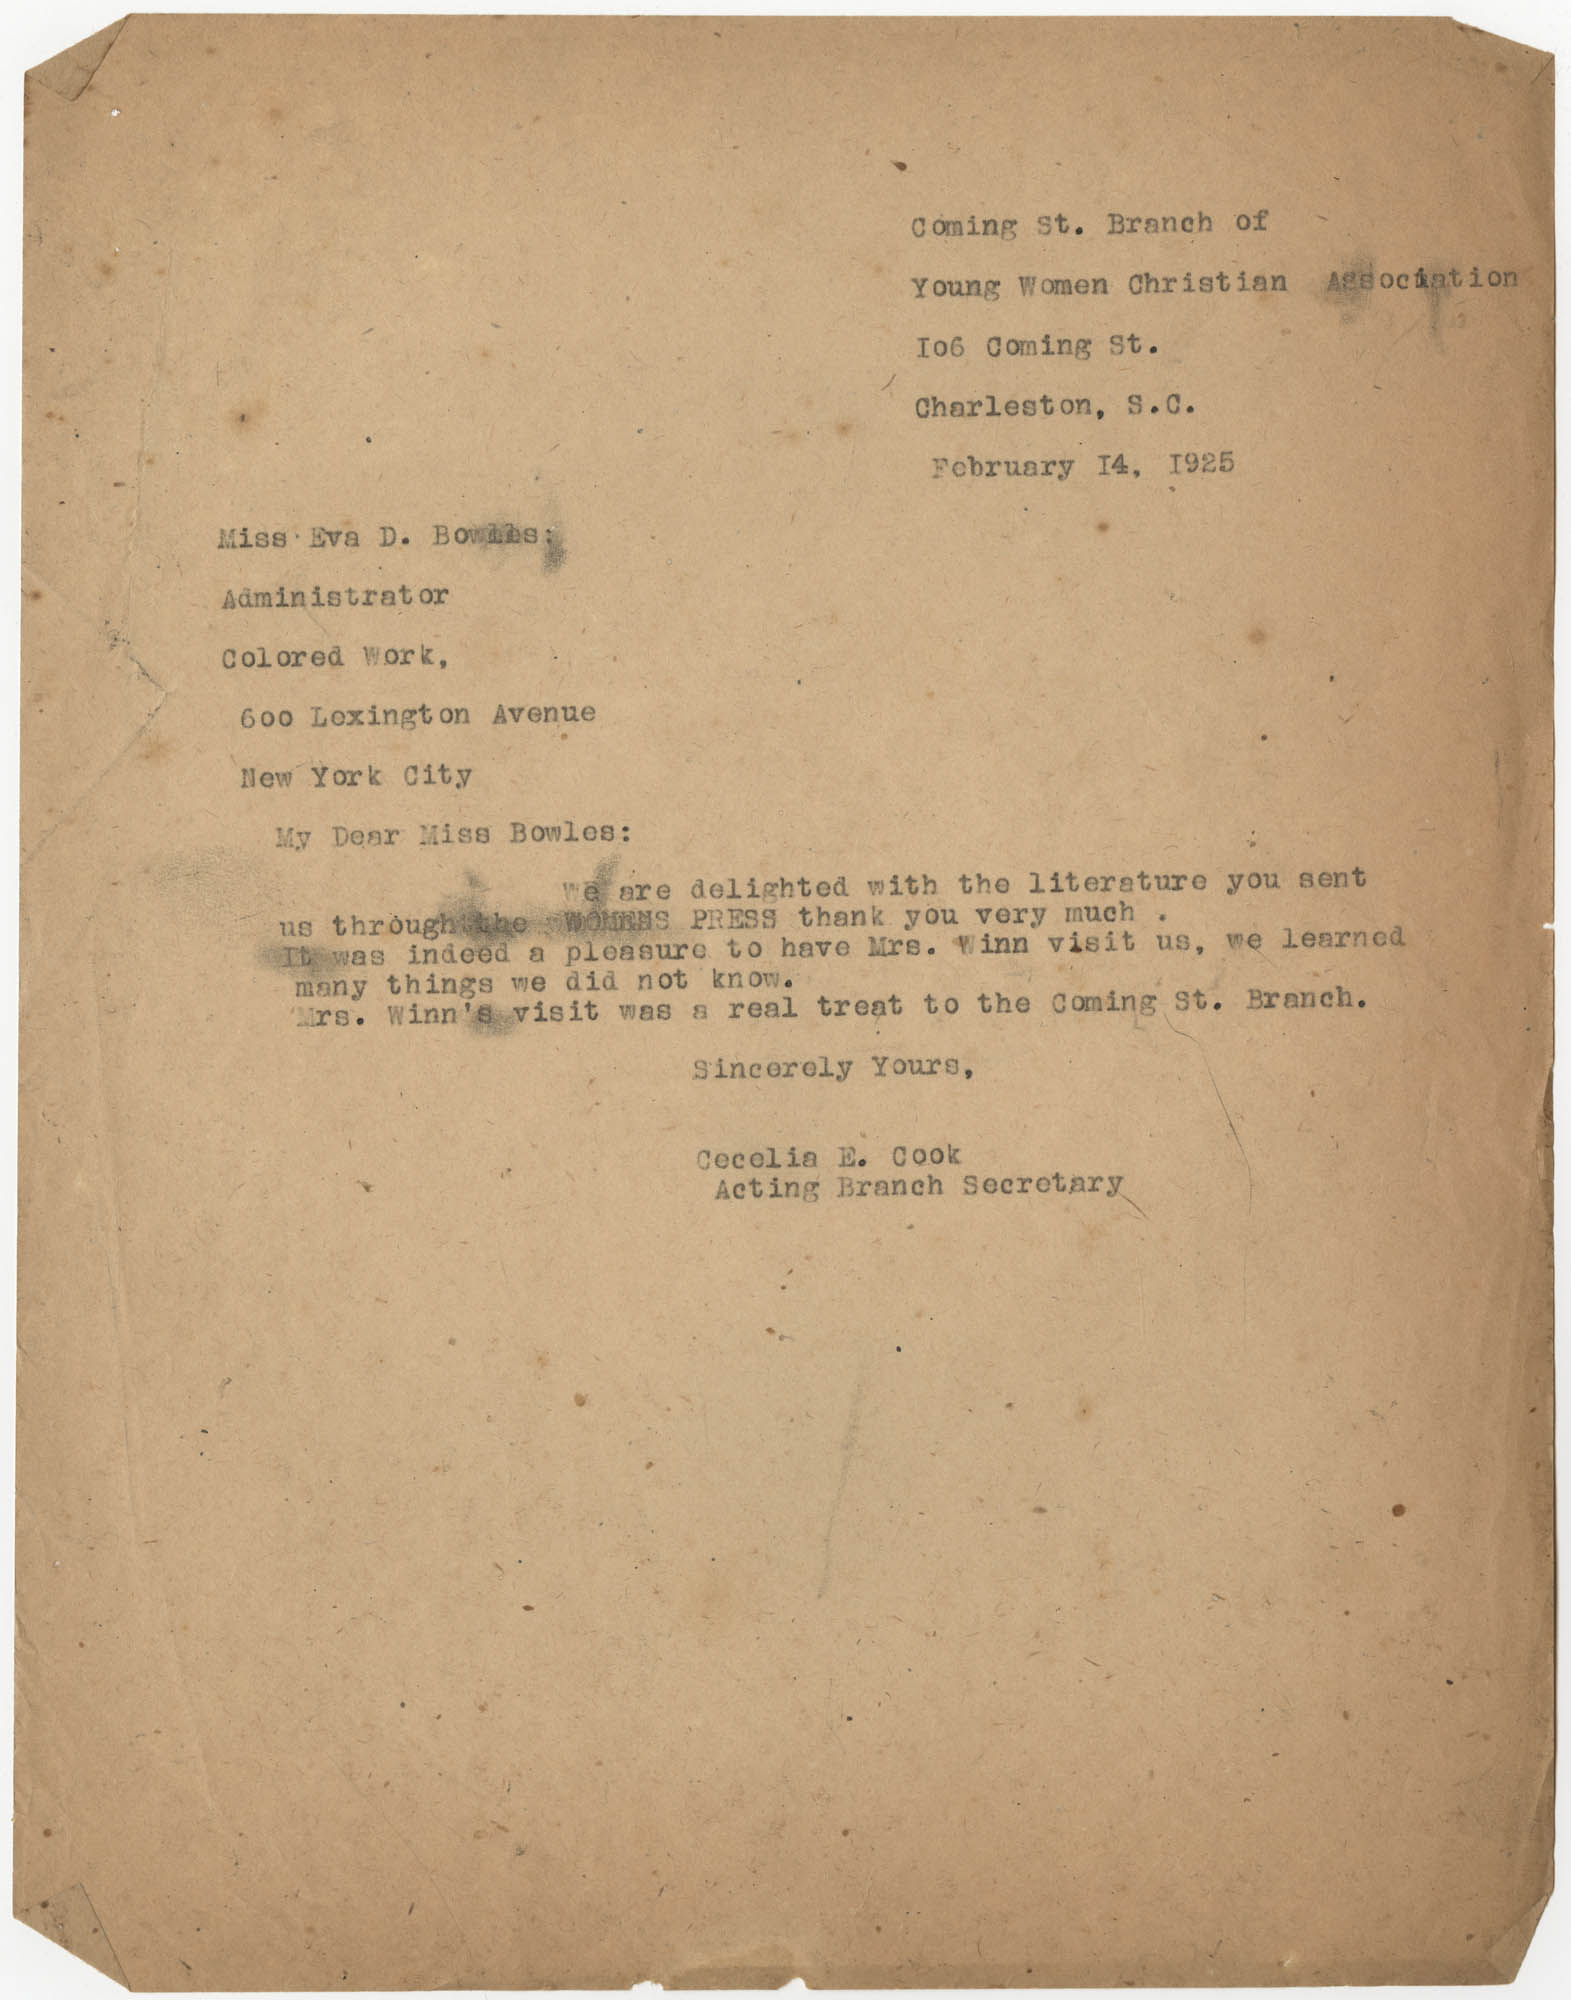 Letter from Cecelia E. Cook to Eva D. Bowles, February 14, 1925